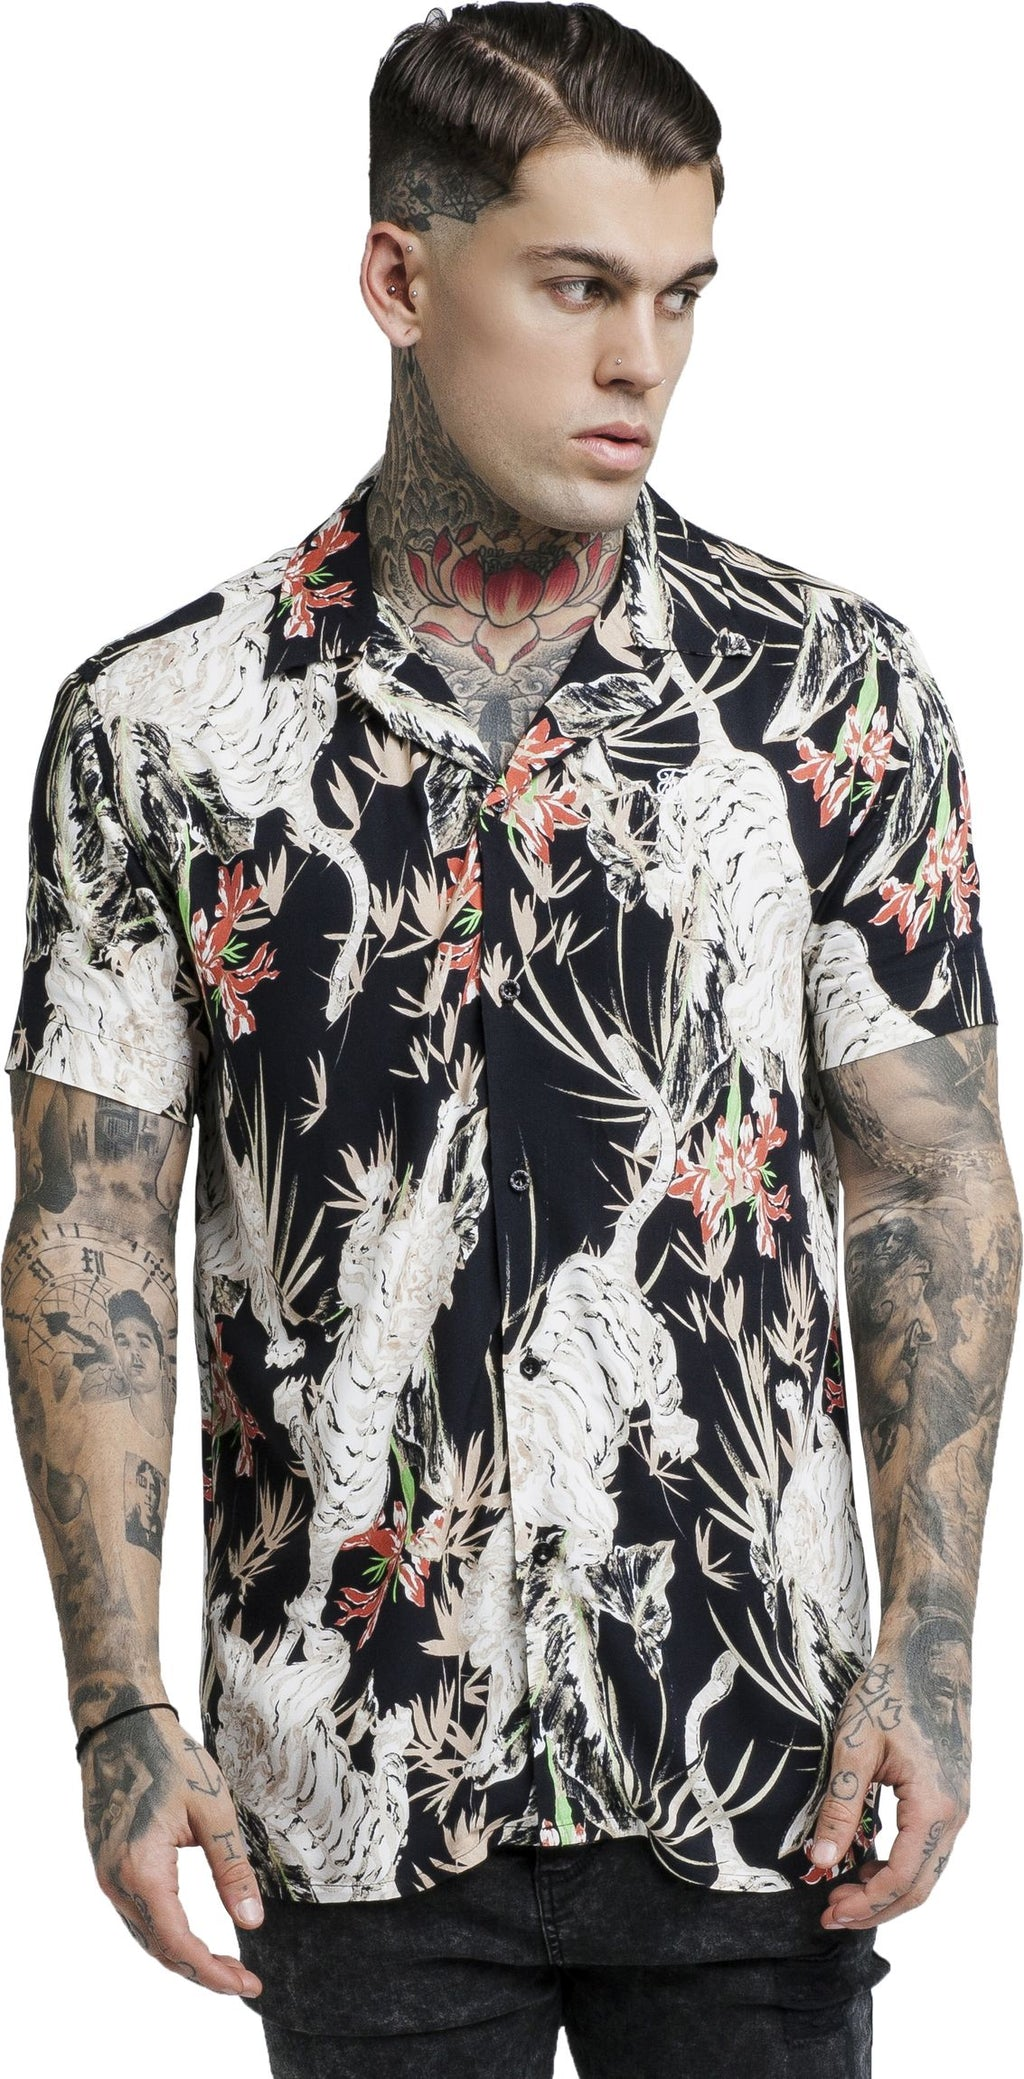 Sik Silk Black Lion Resort Short Sleeve Shirt